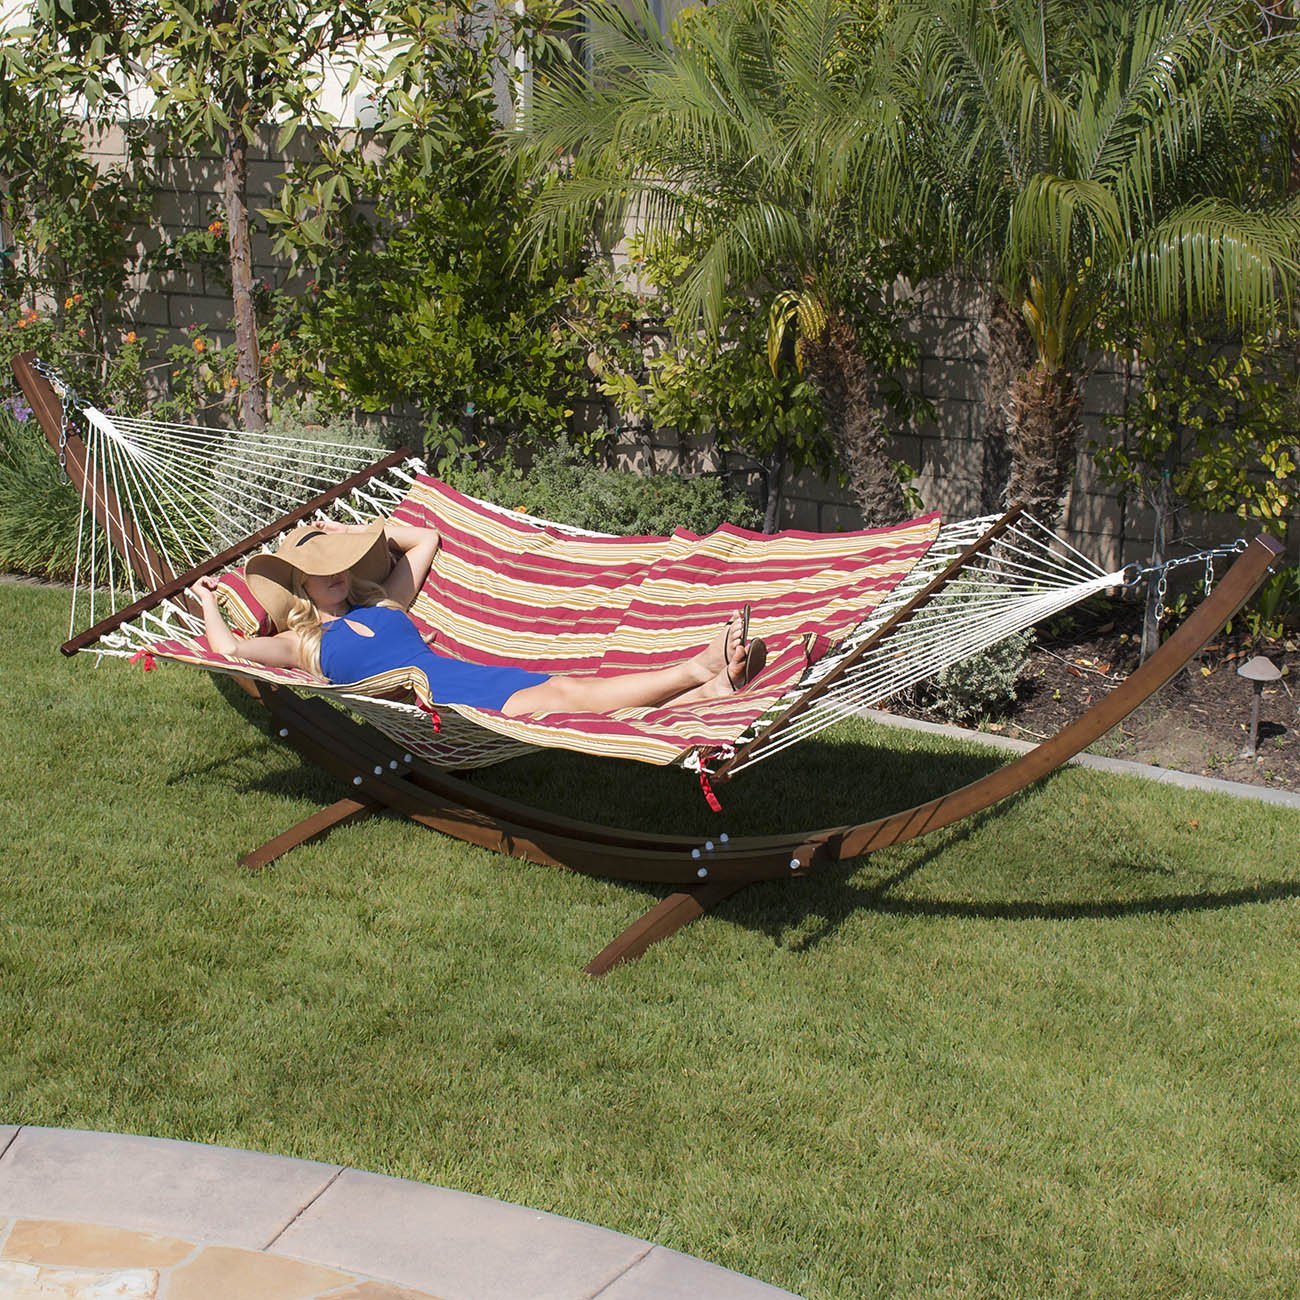 Belleze 13ft Wooden Curved Arc Hammock Stand, Back Yard Garden Caribbean Cotton w/ Tablet and Cup Holder